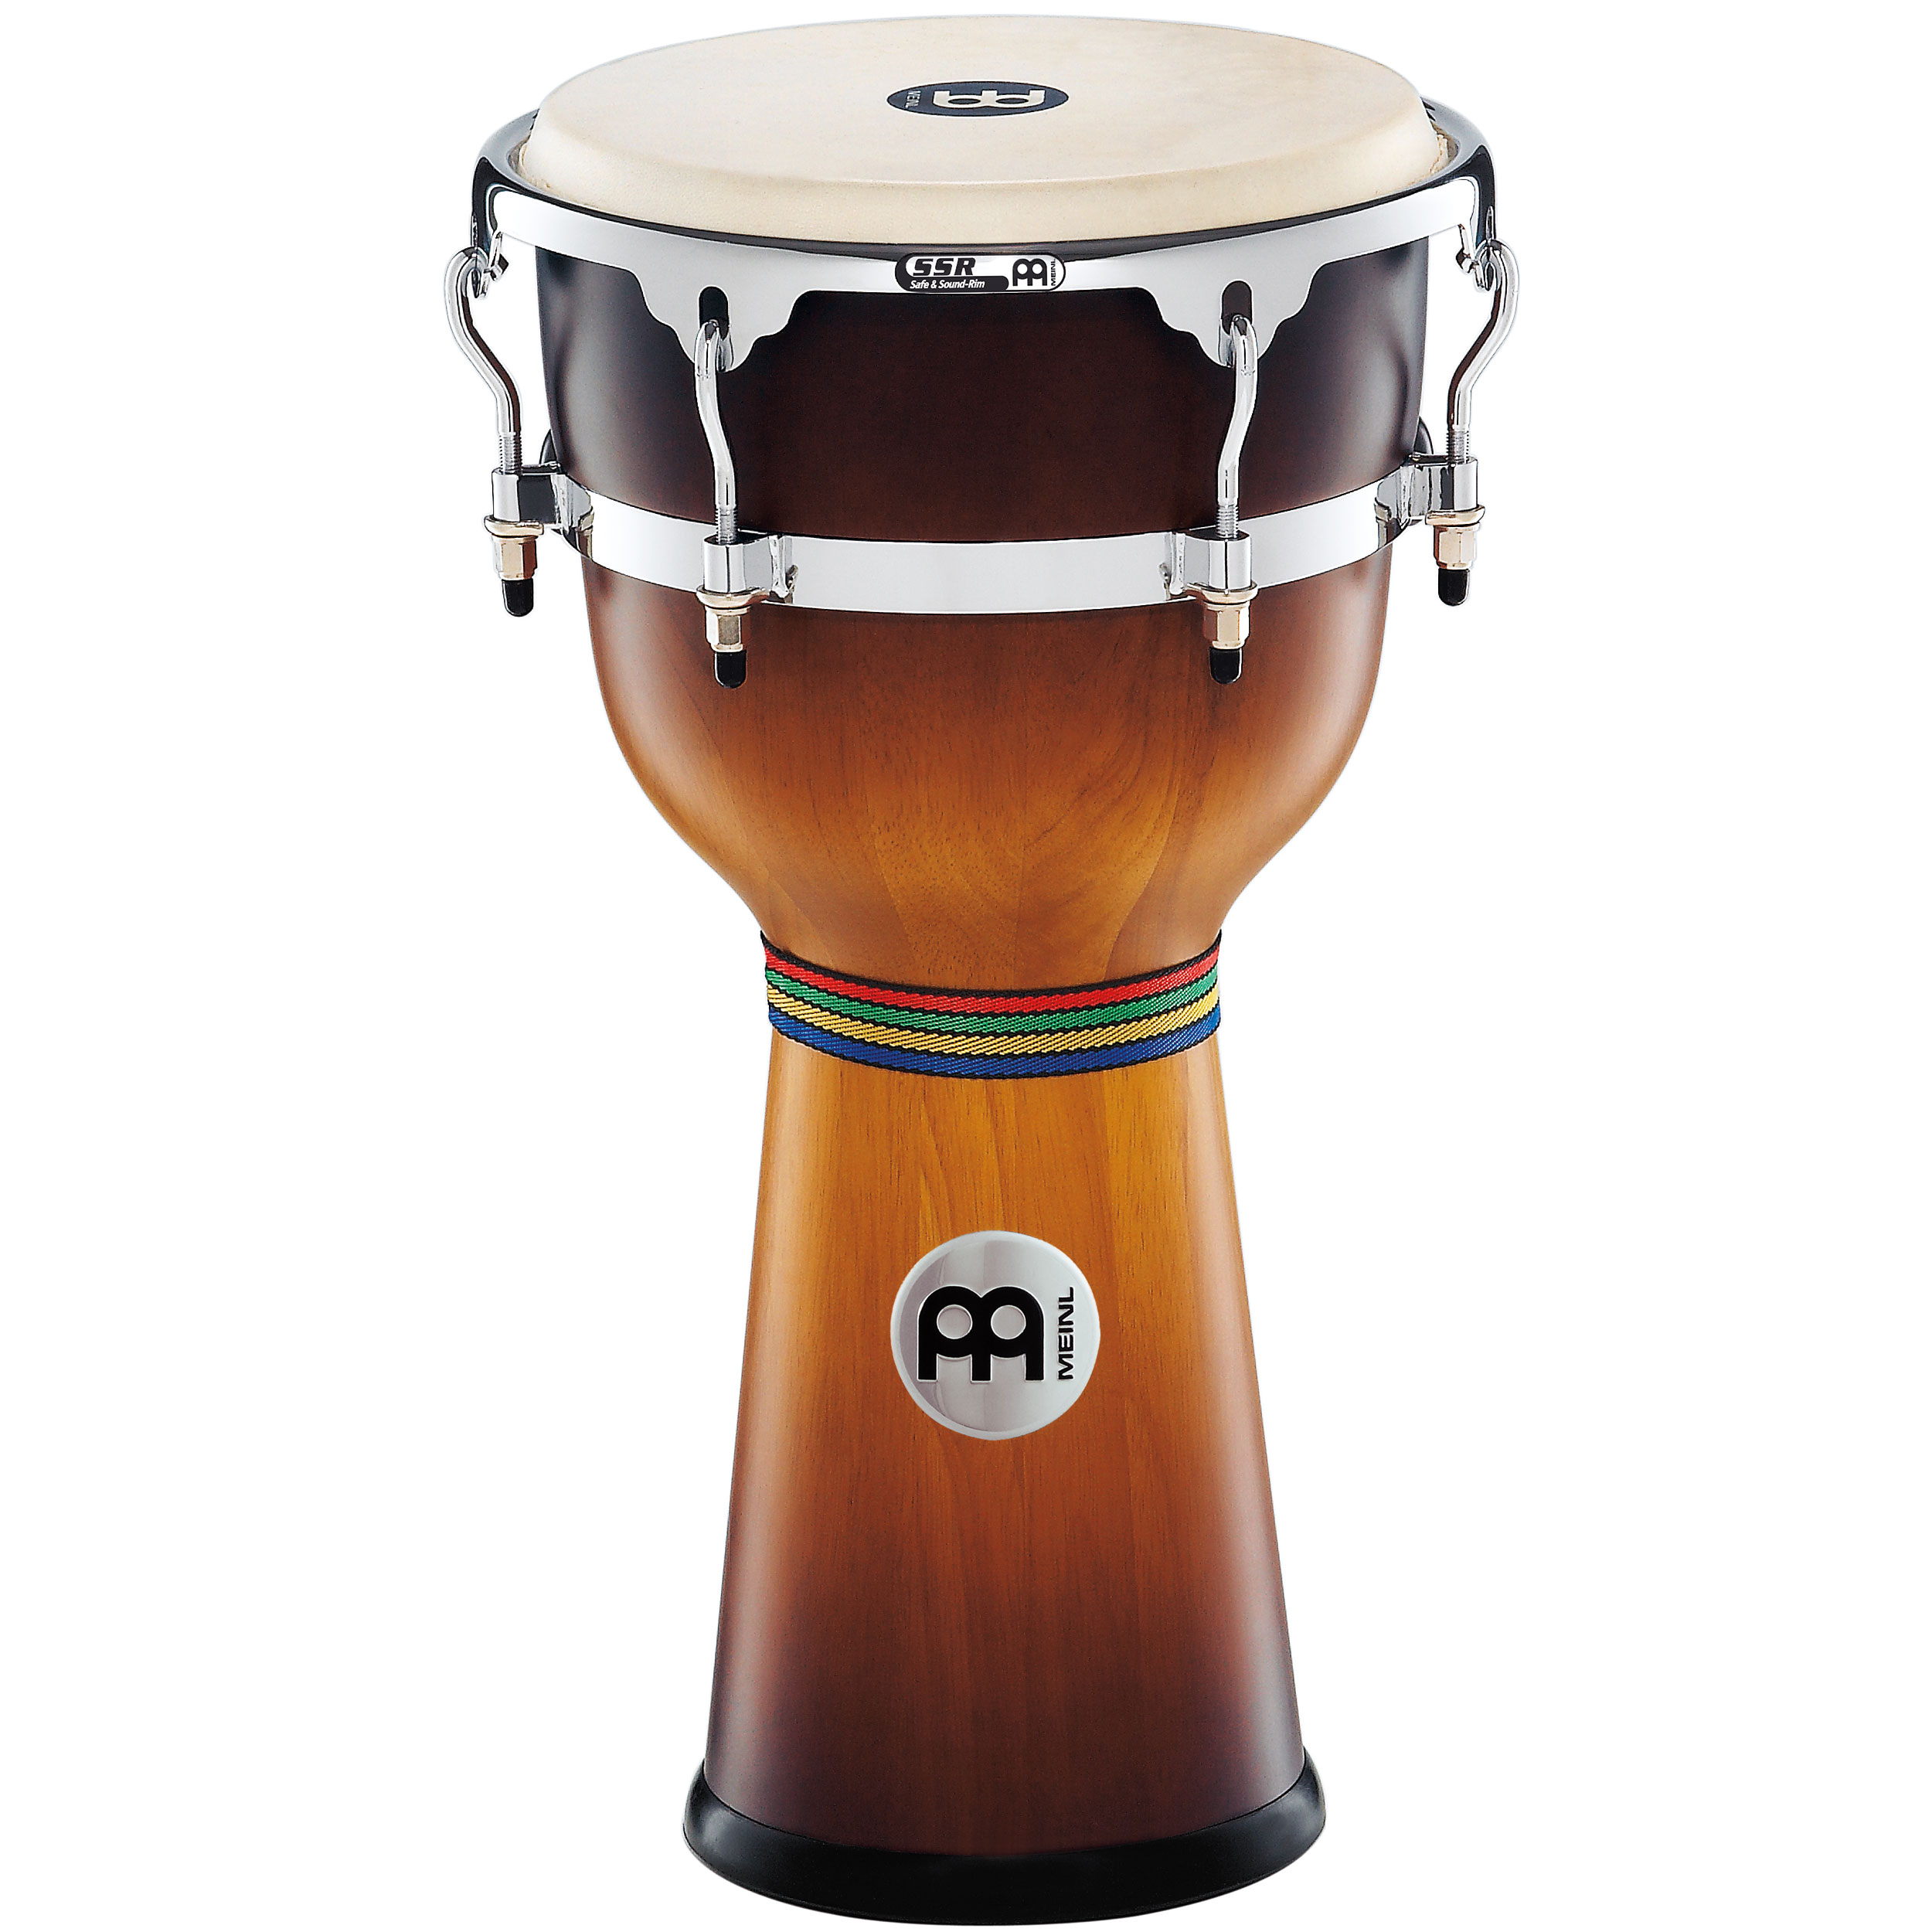 "Meinl 12"" x 24 1/4"" Floatune Wood Djembe in Gold Amber Sunburst"